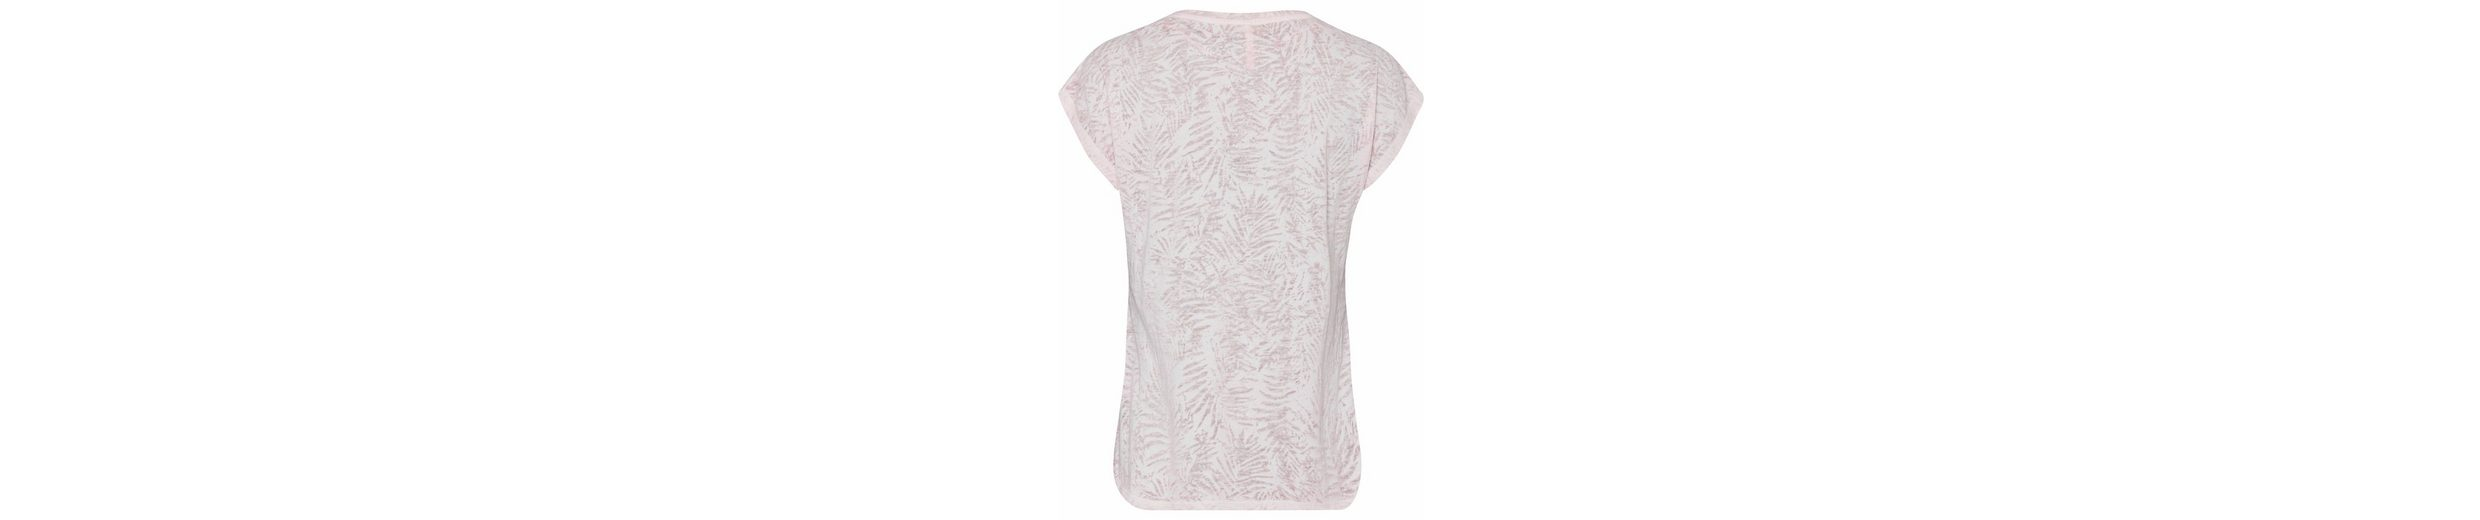 Key Largo T-Shirt Breeze, mit Print und Glitzersteinen